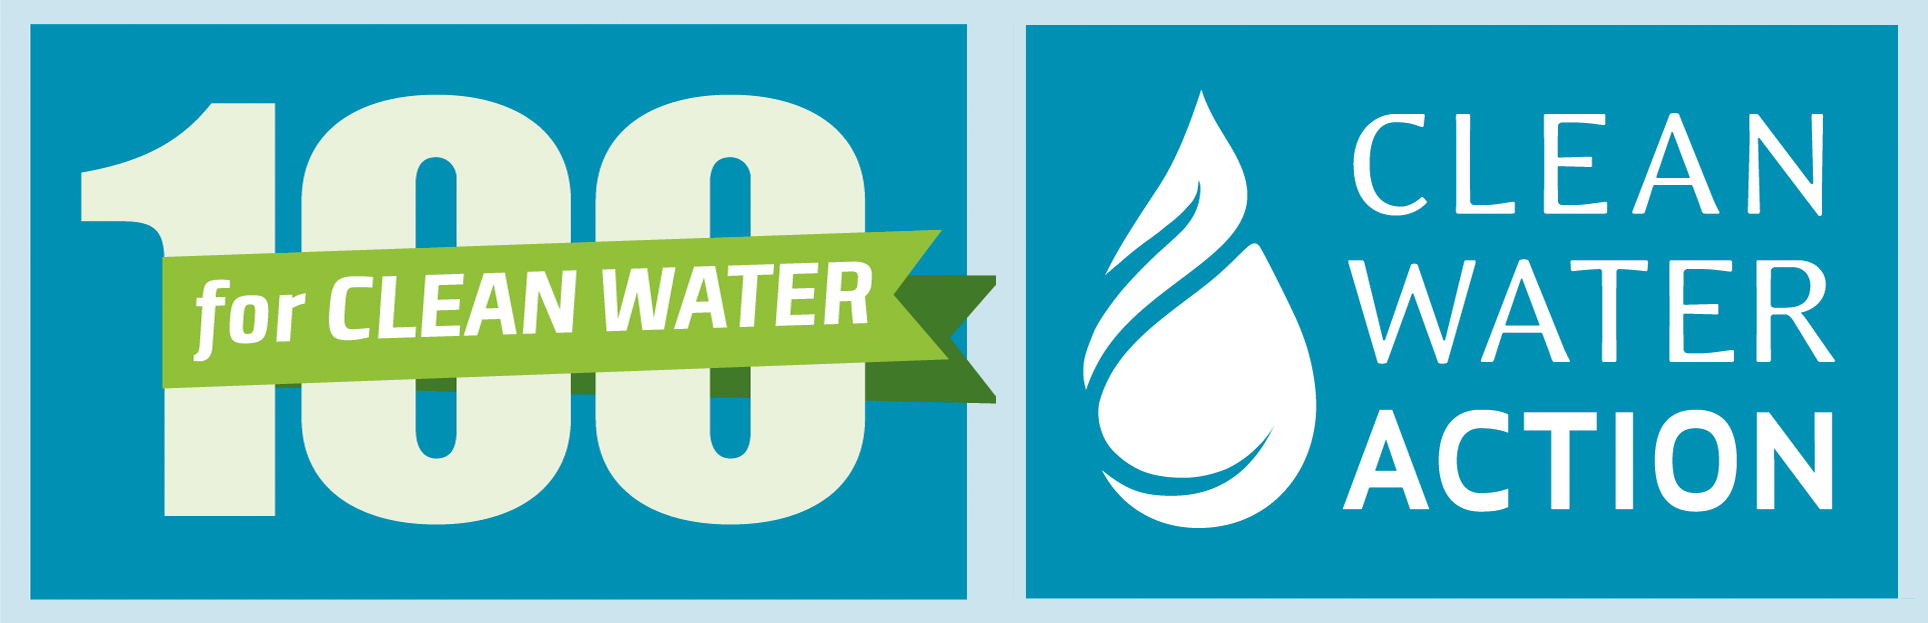 100 for Clean Water Logo